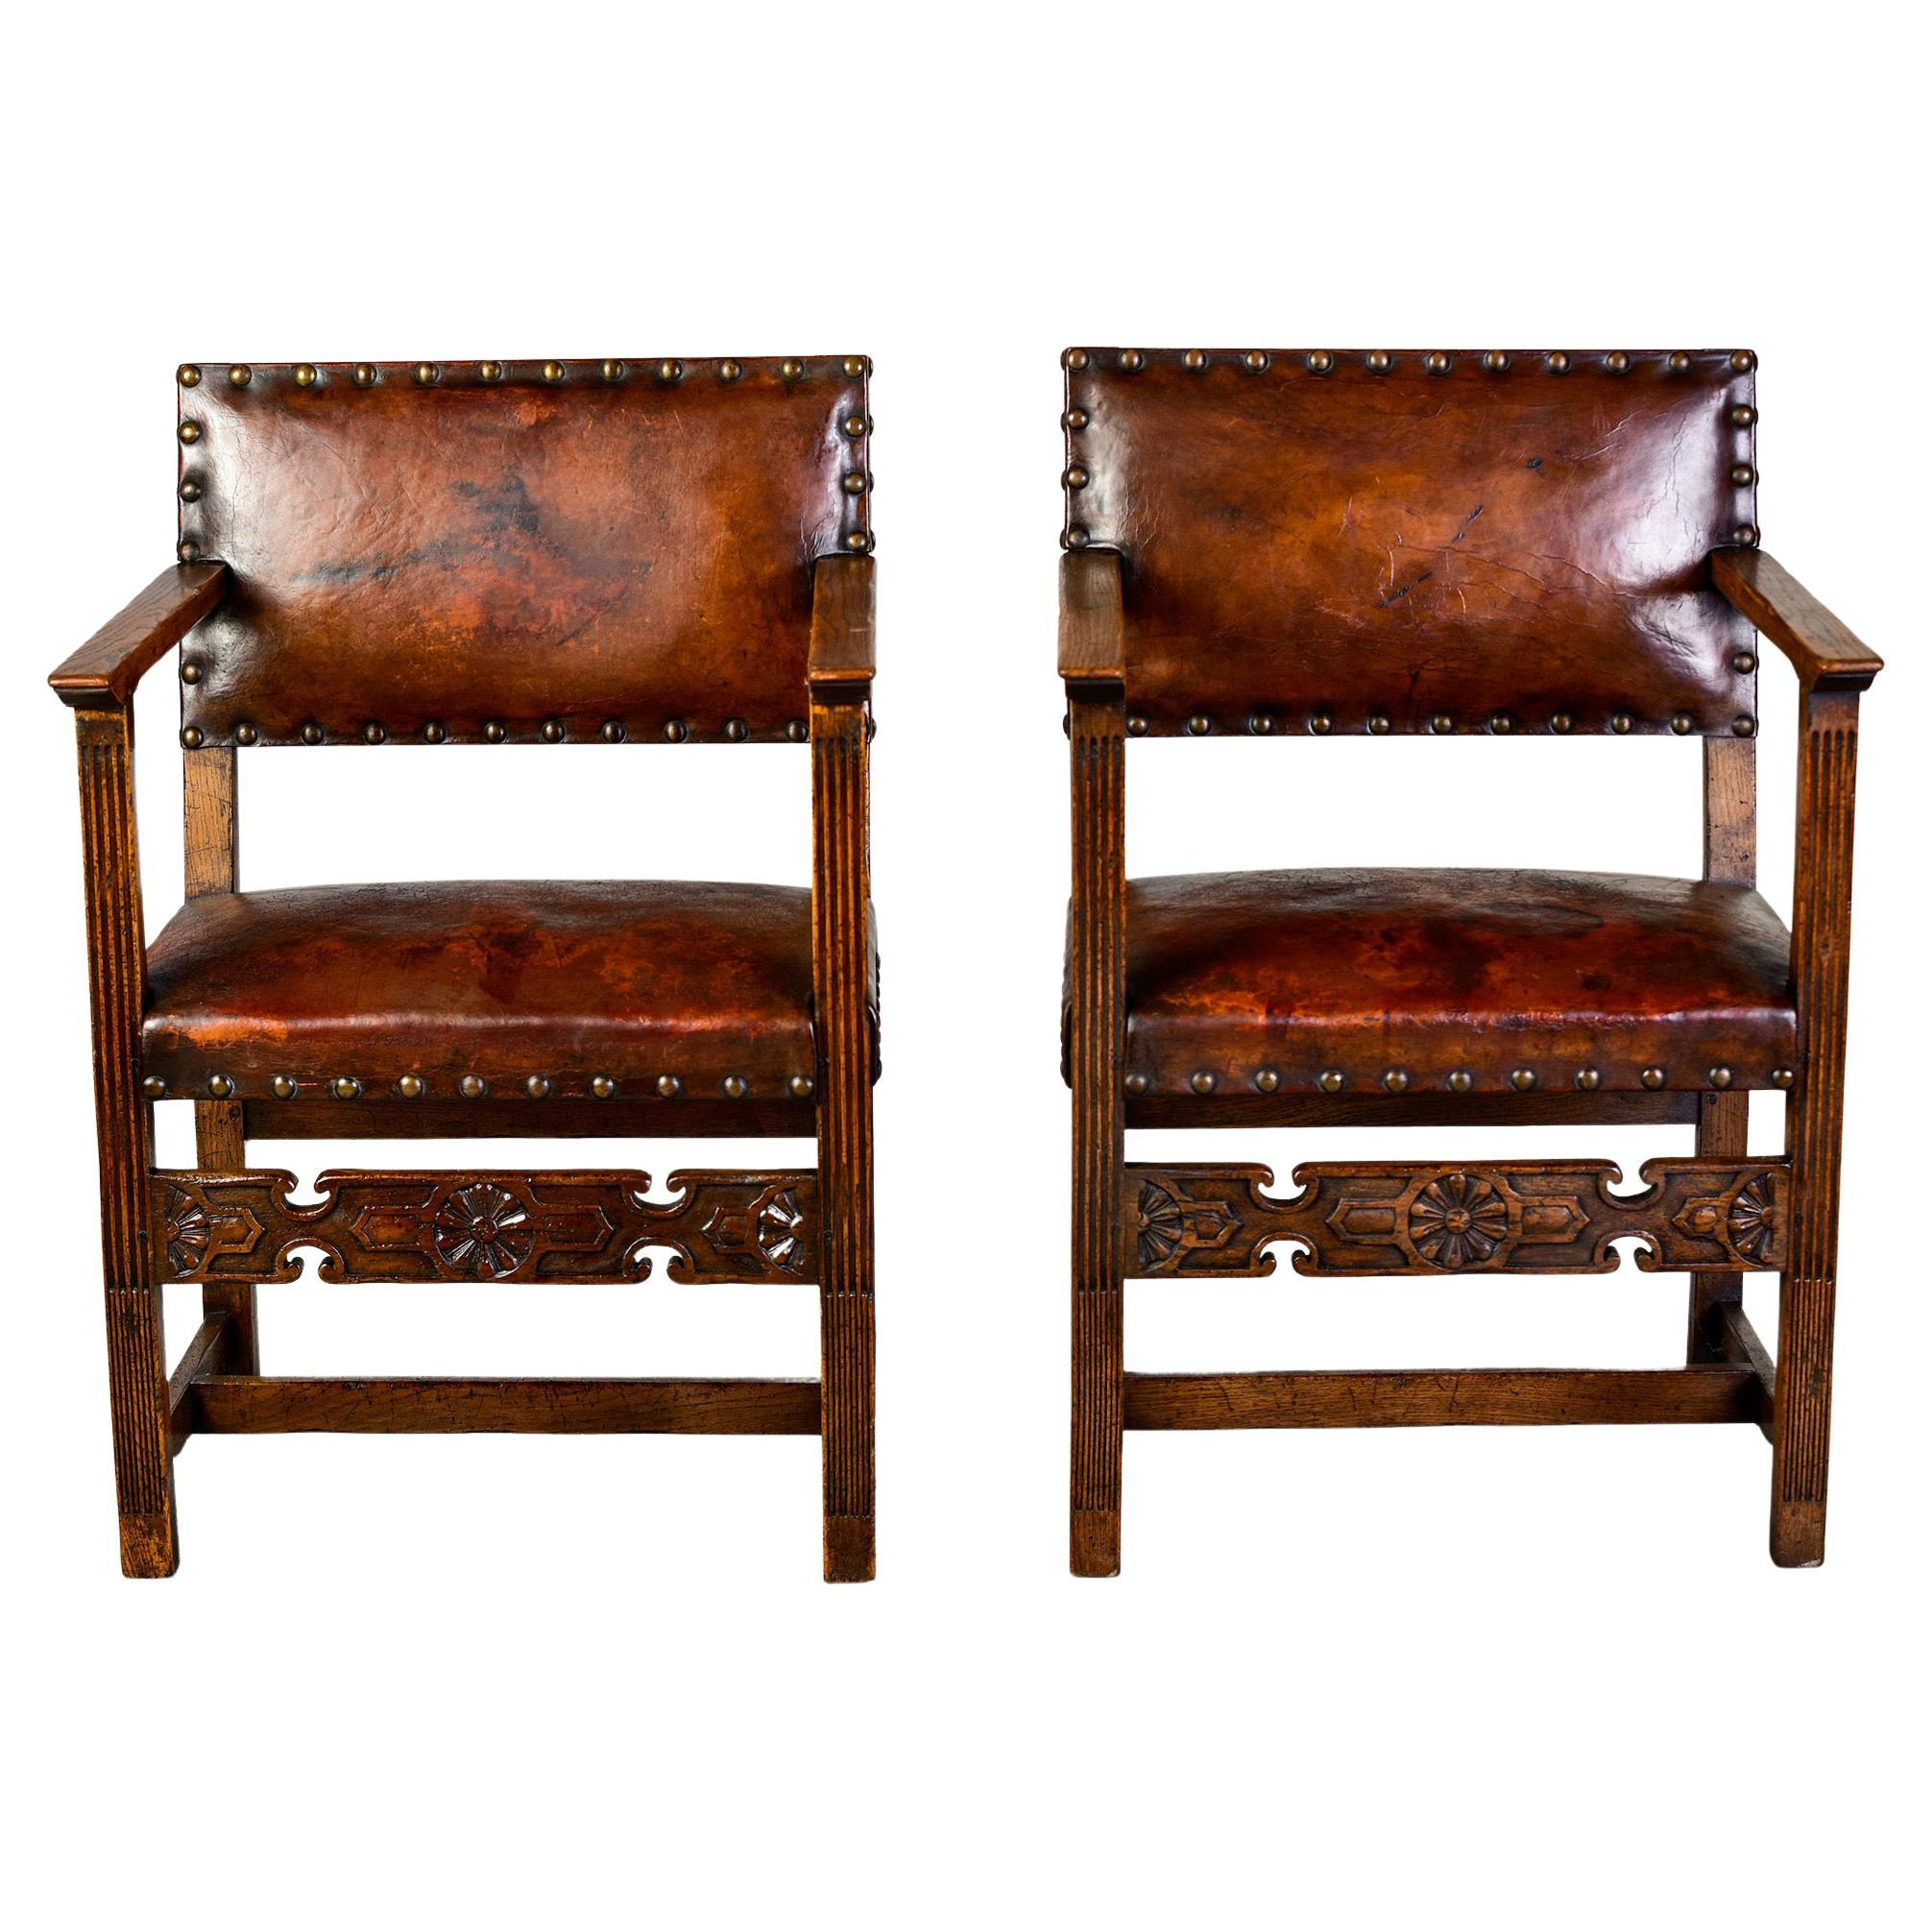 Pair English Arts and Crafts Oak Chairs With Original Leather